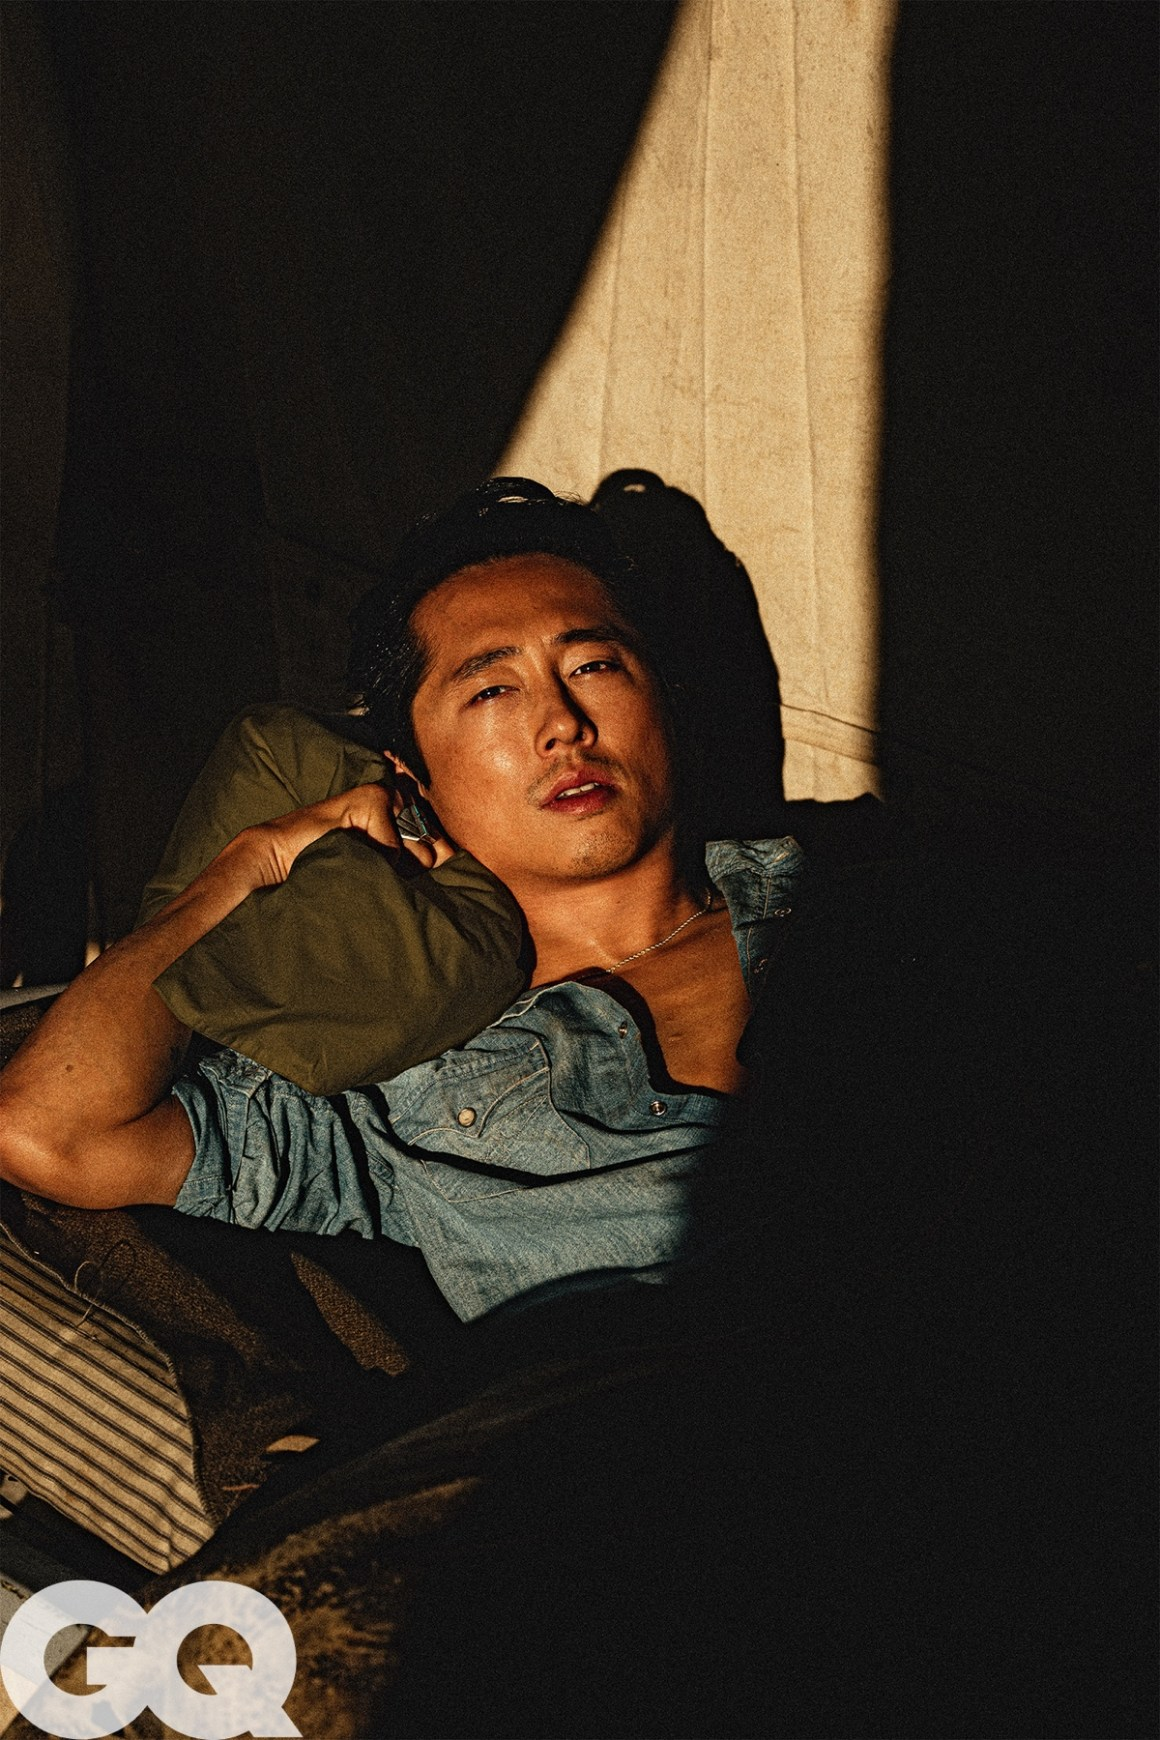 Steven Yeun covers GQ April 2021